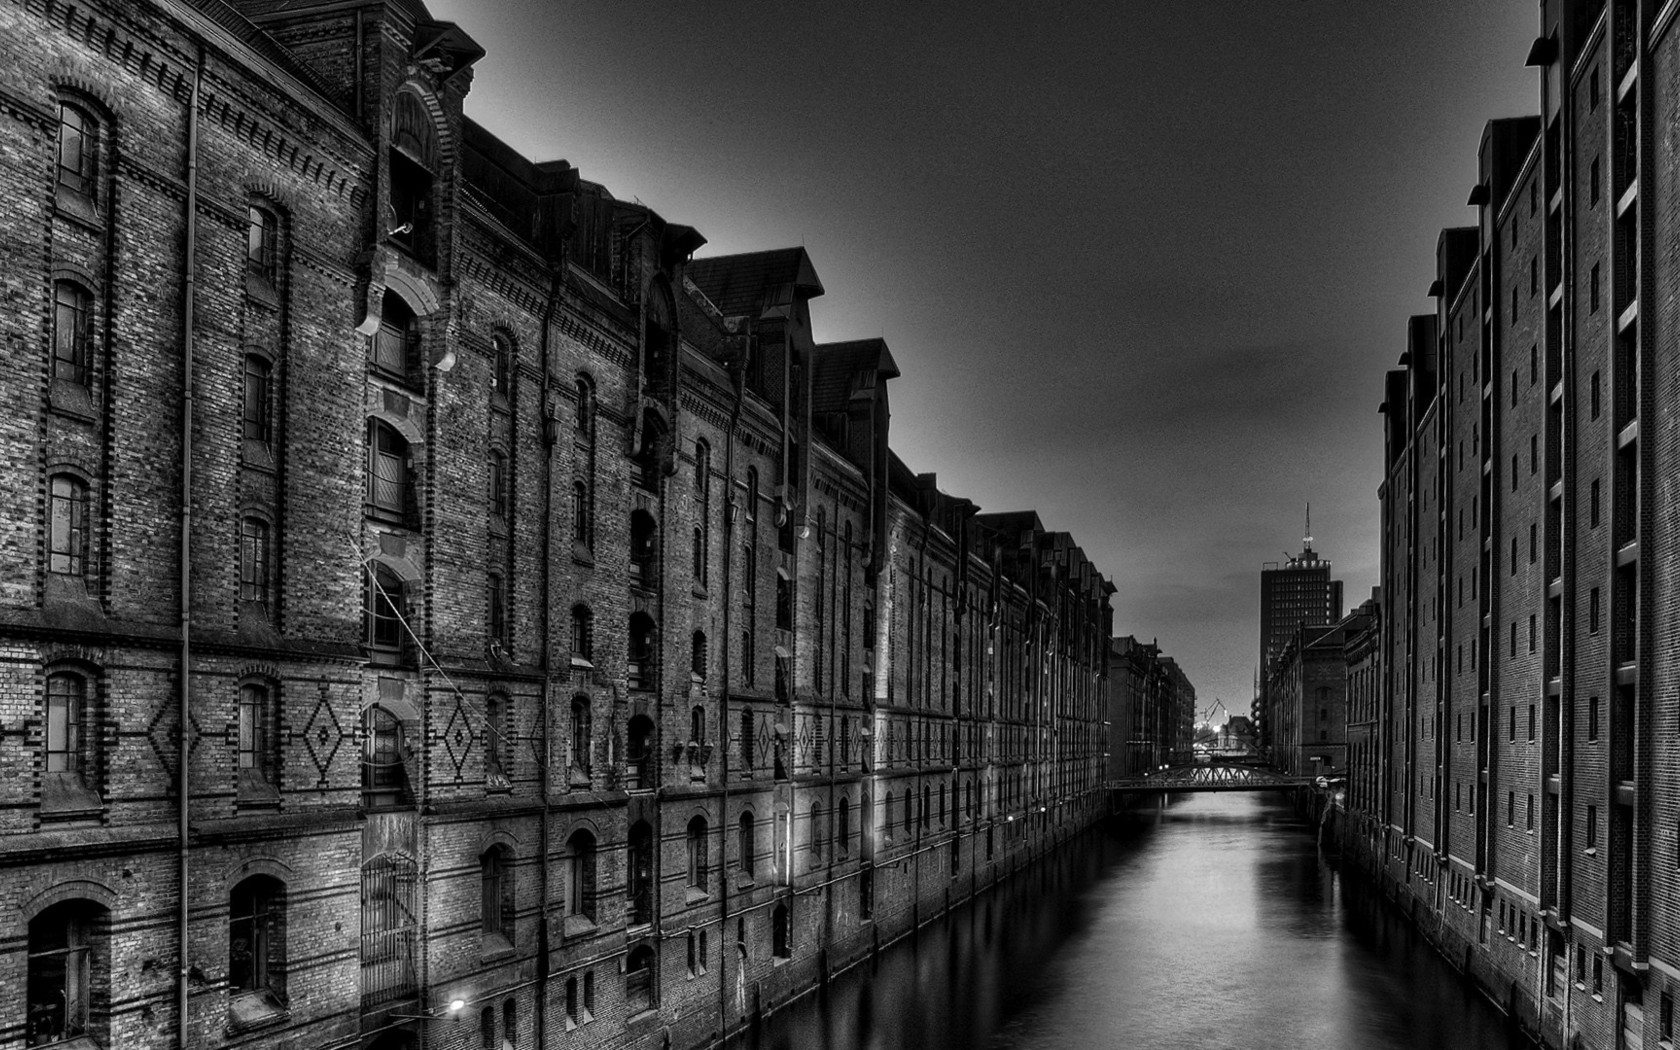 City street over the canal